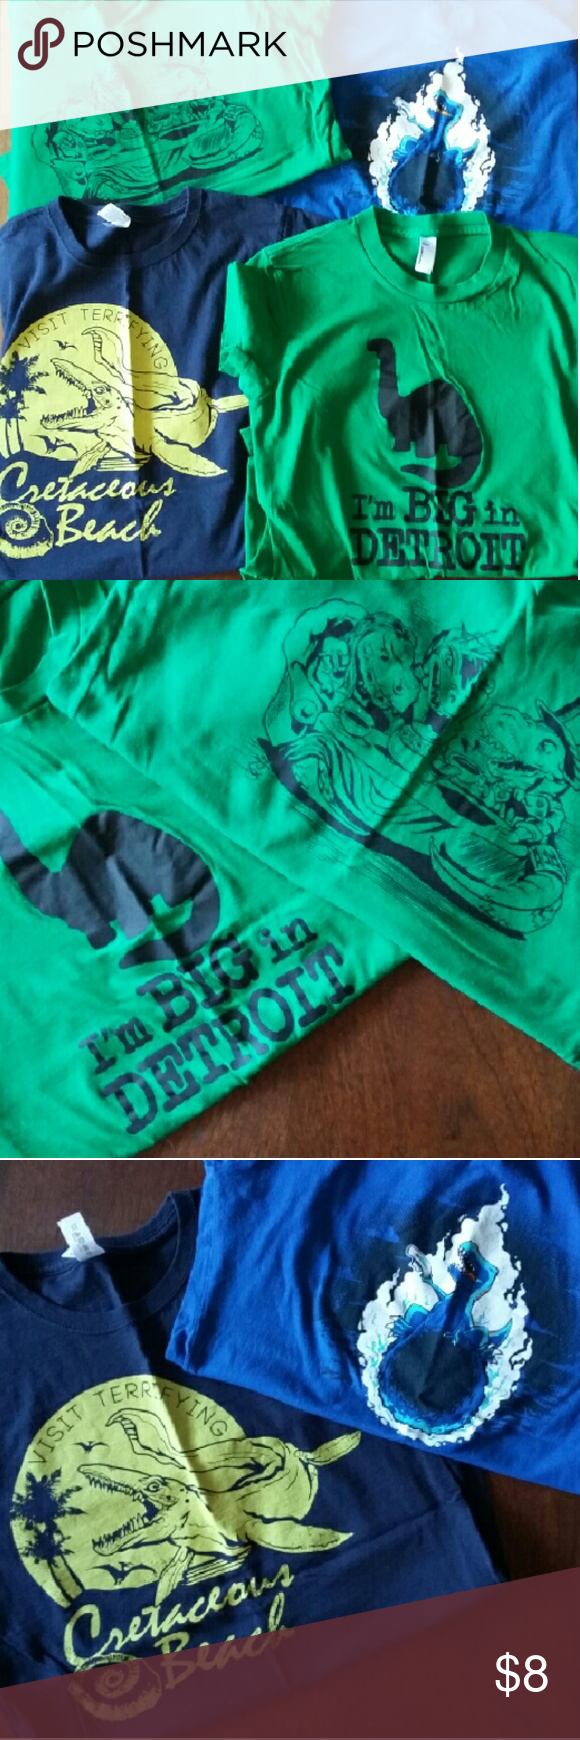 Dinosaur t-shirts Bundle of four dinosaur tees, all fitted crewneck: I'm Big In Detroit (American Apparel S) Mad Hatter T-Rex party (Tultex M) Cretaceous Beach (Gildan M) T-Rex meteor (Tee Fury M) Tee Fury Tops Tees - Short Sleeve